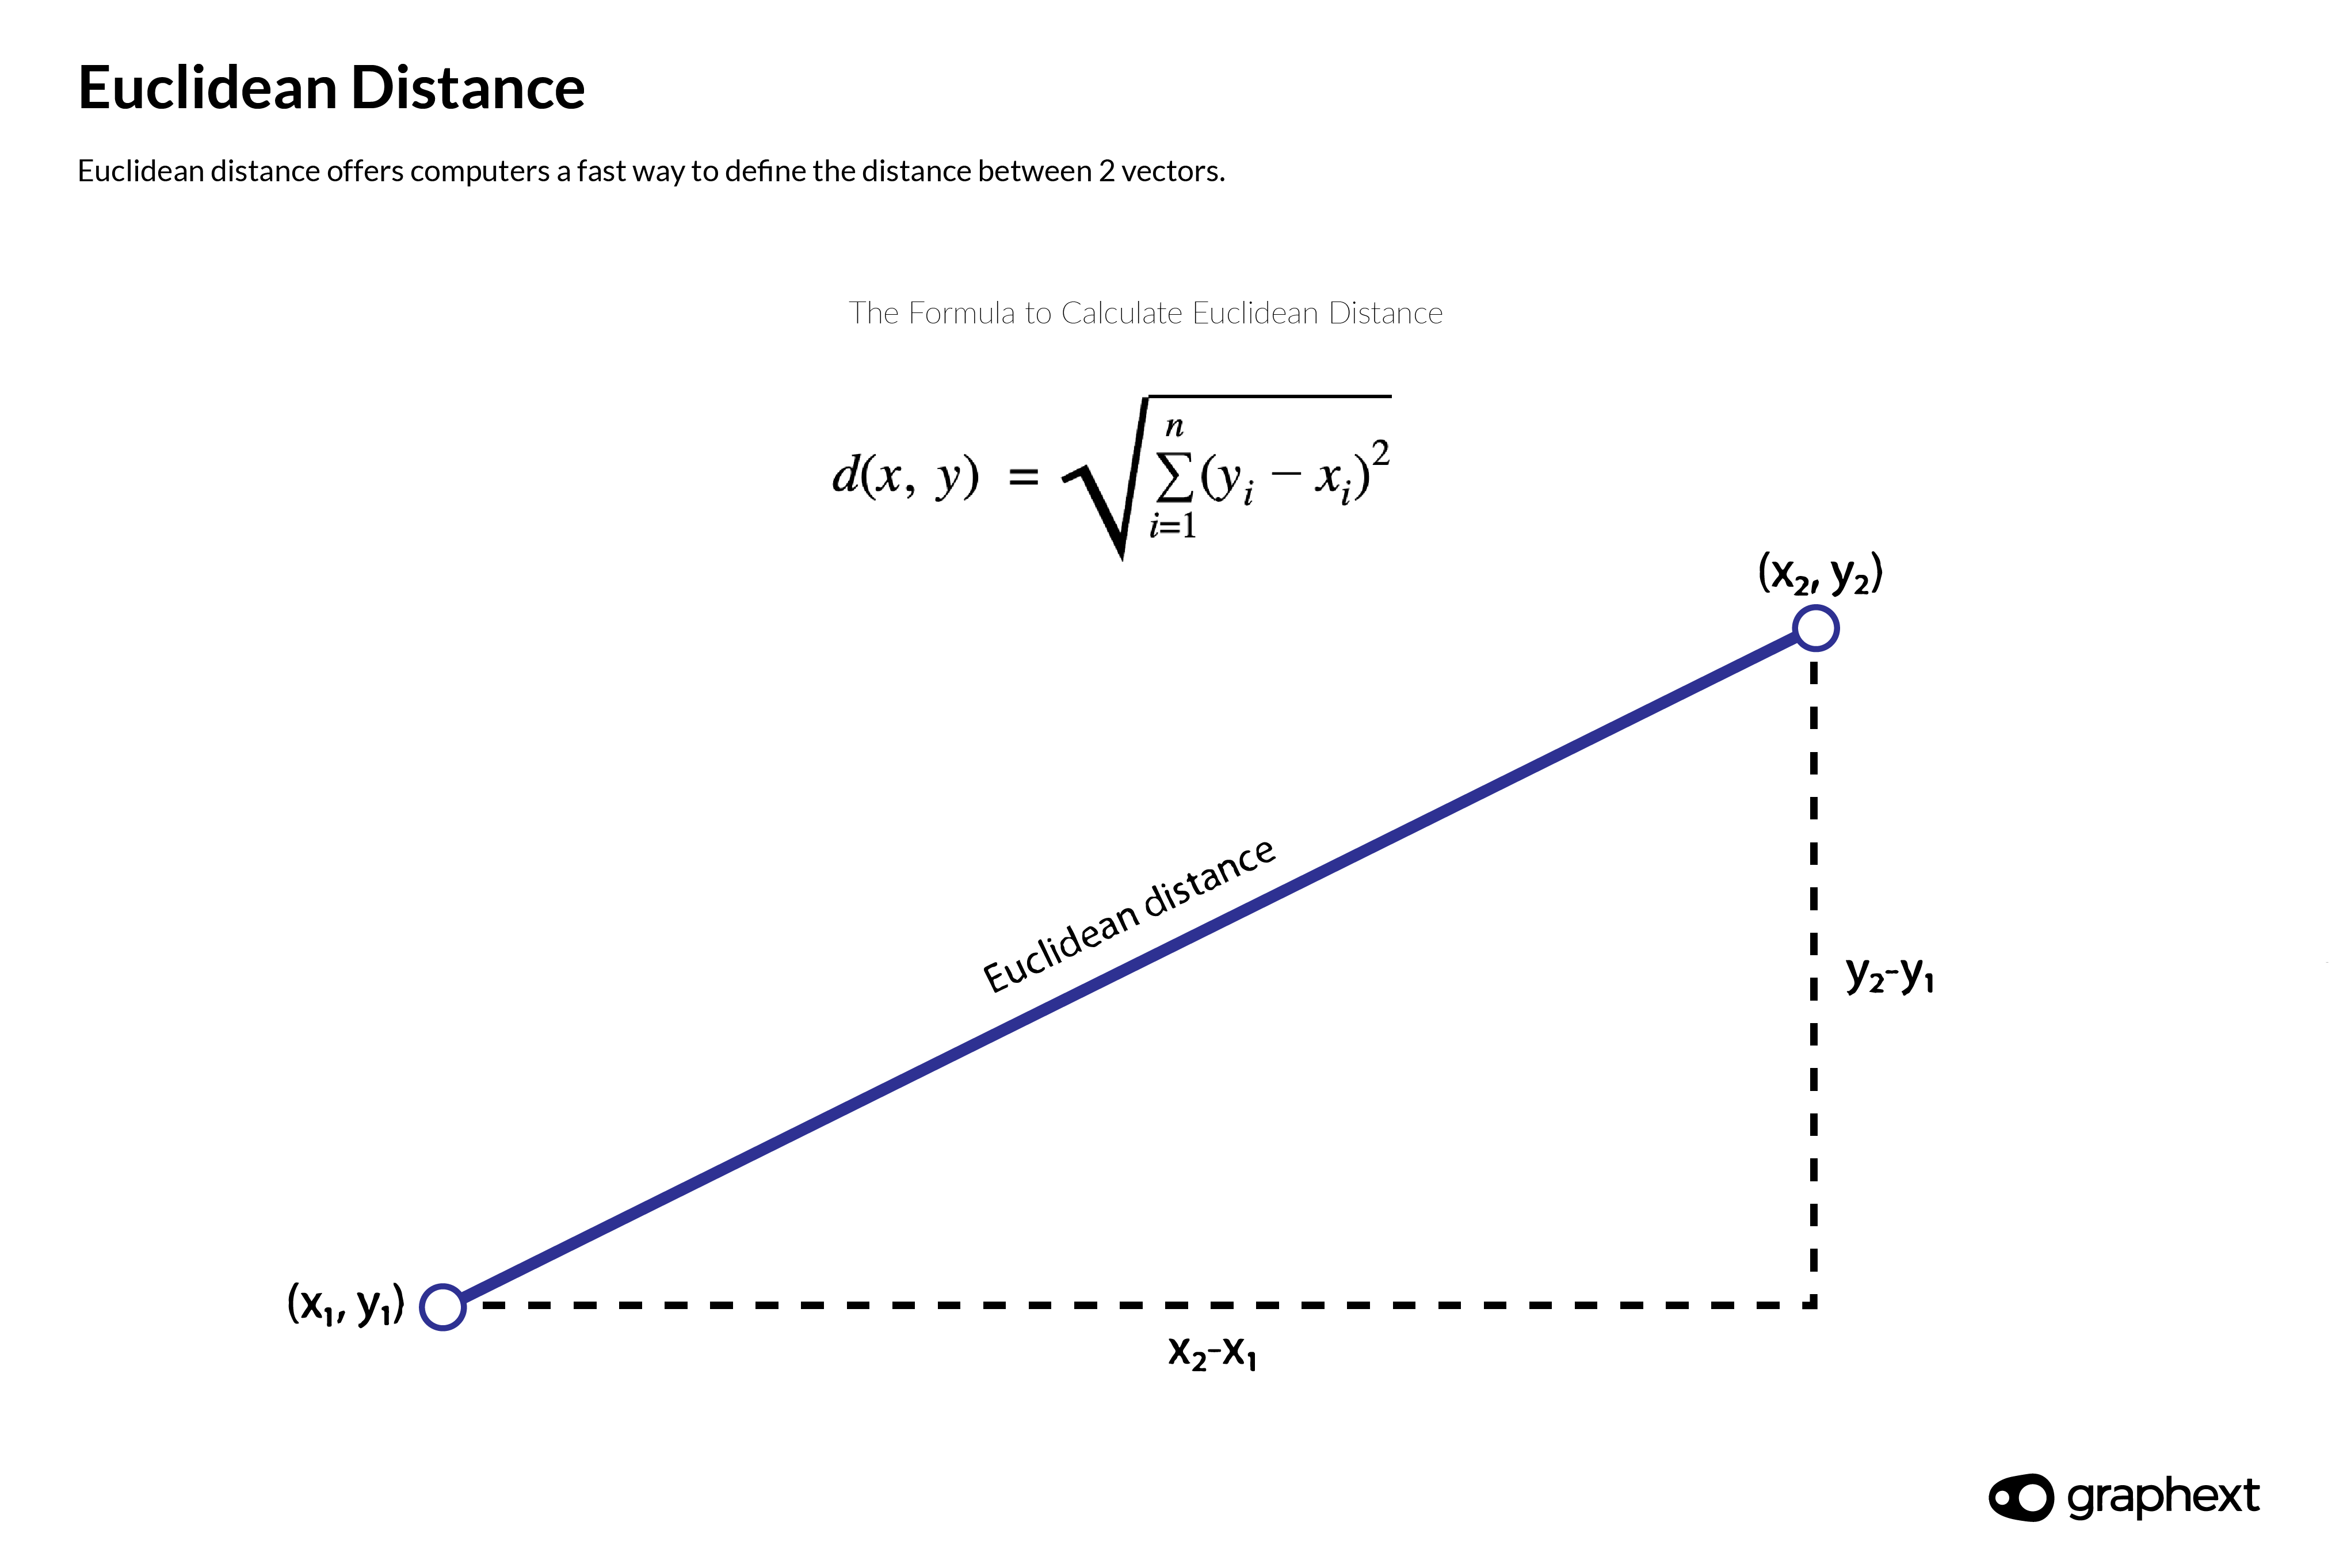 An infographic showing the math behind calculating euclidean distance - a method used to define the distance between 2 vectors.